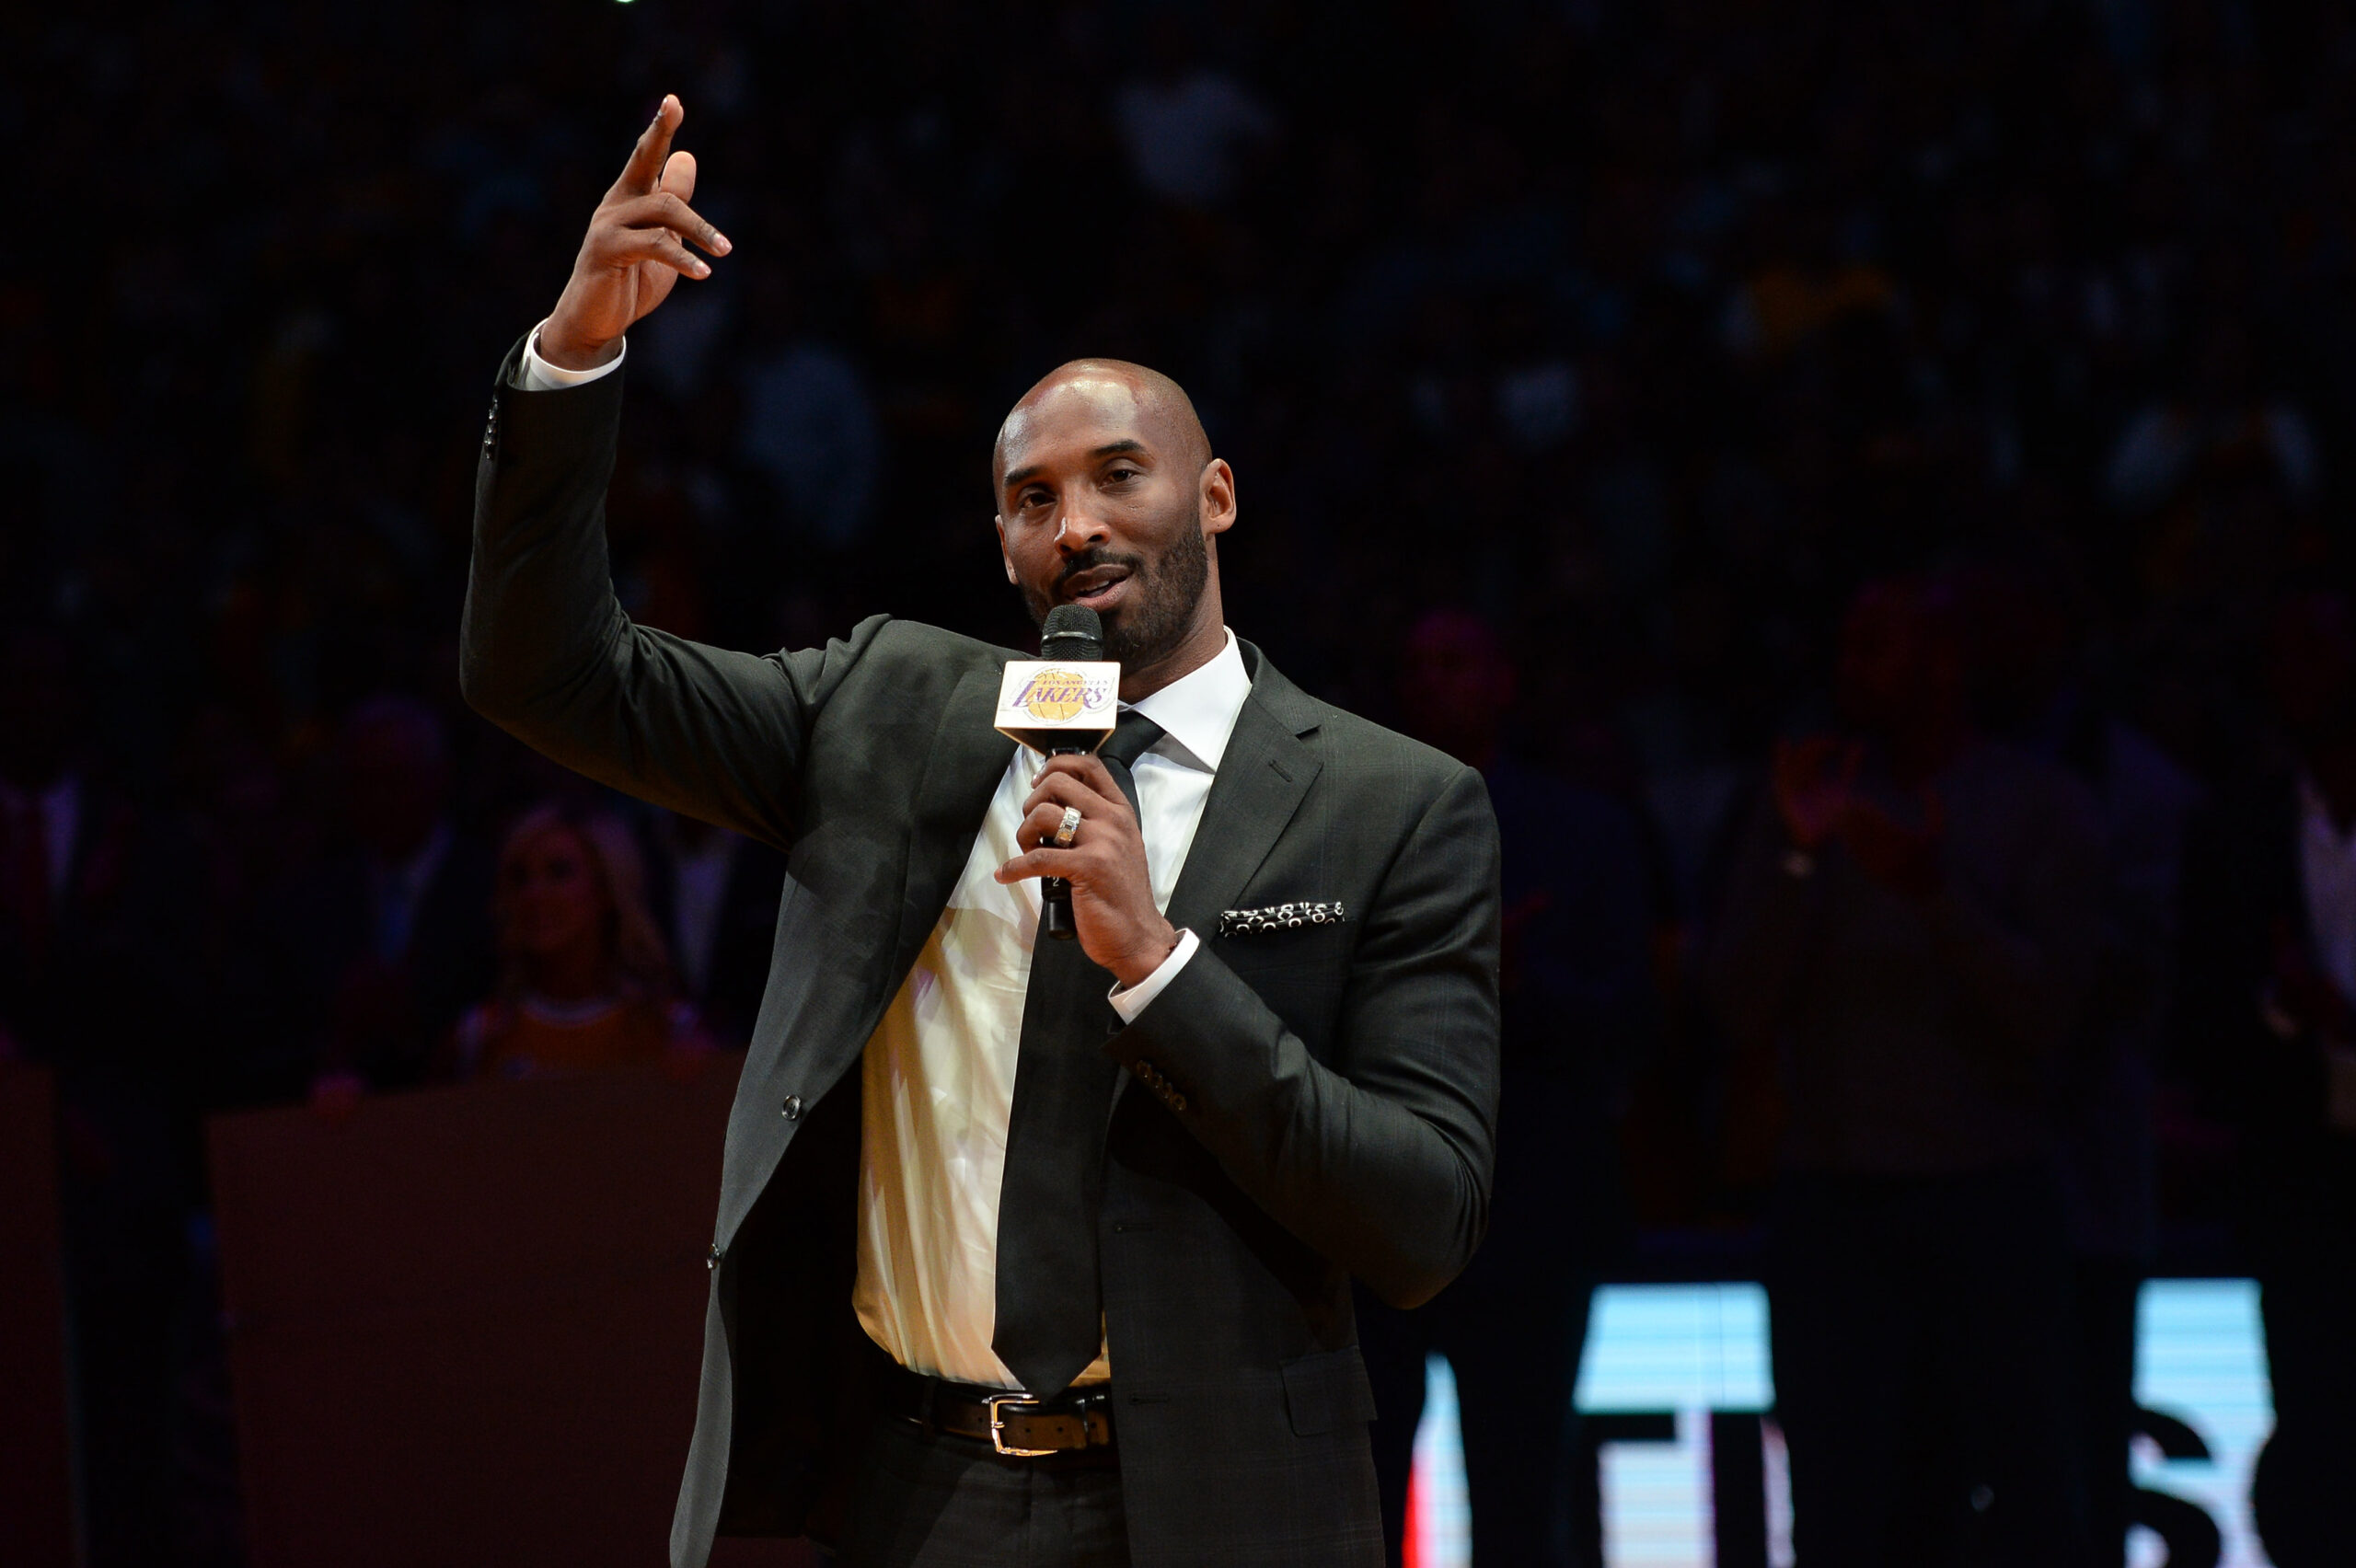 Kobe Bryant speaks during a ceremony to retire both the numbers he wore as a Los Angeles Laker at the Staples Center in Los Angeles